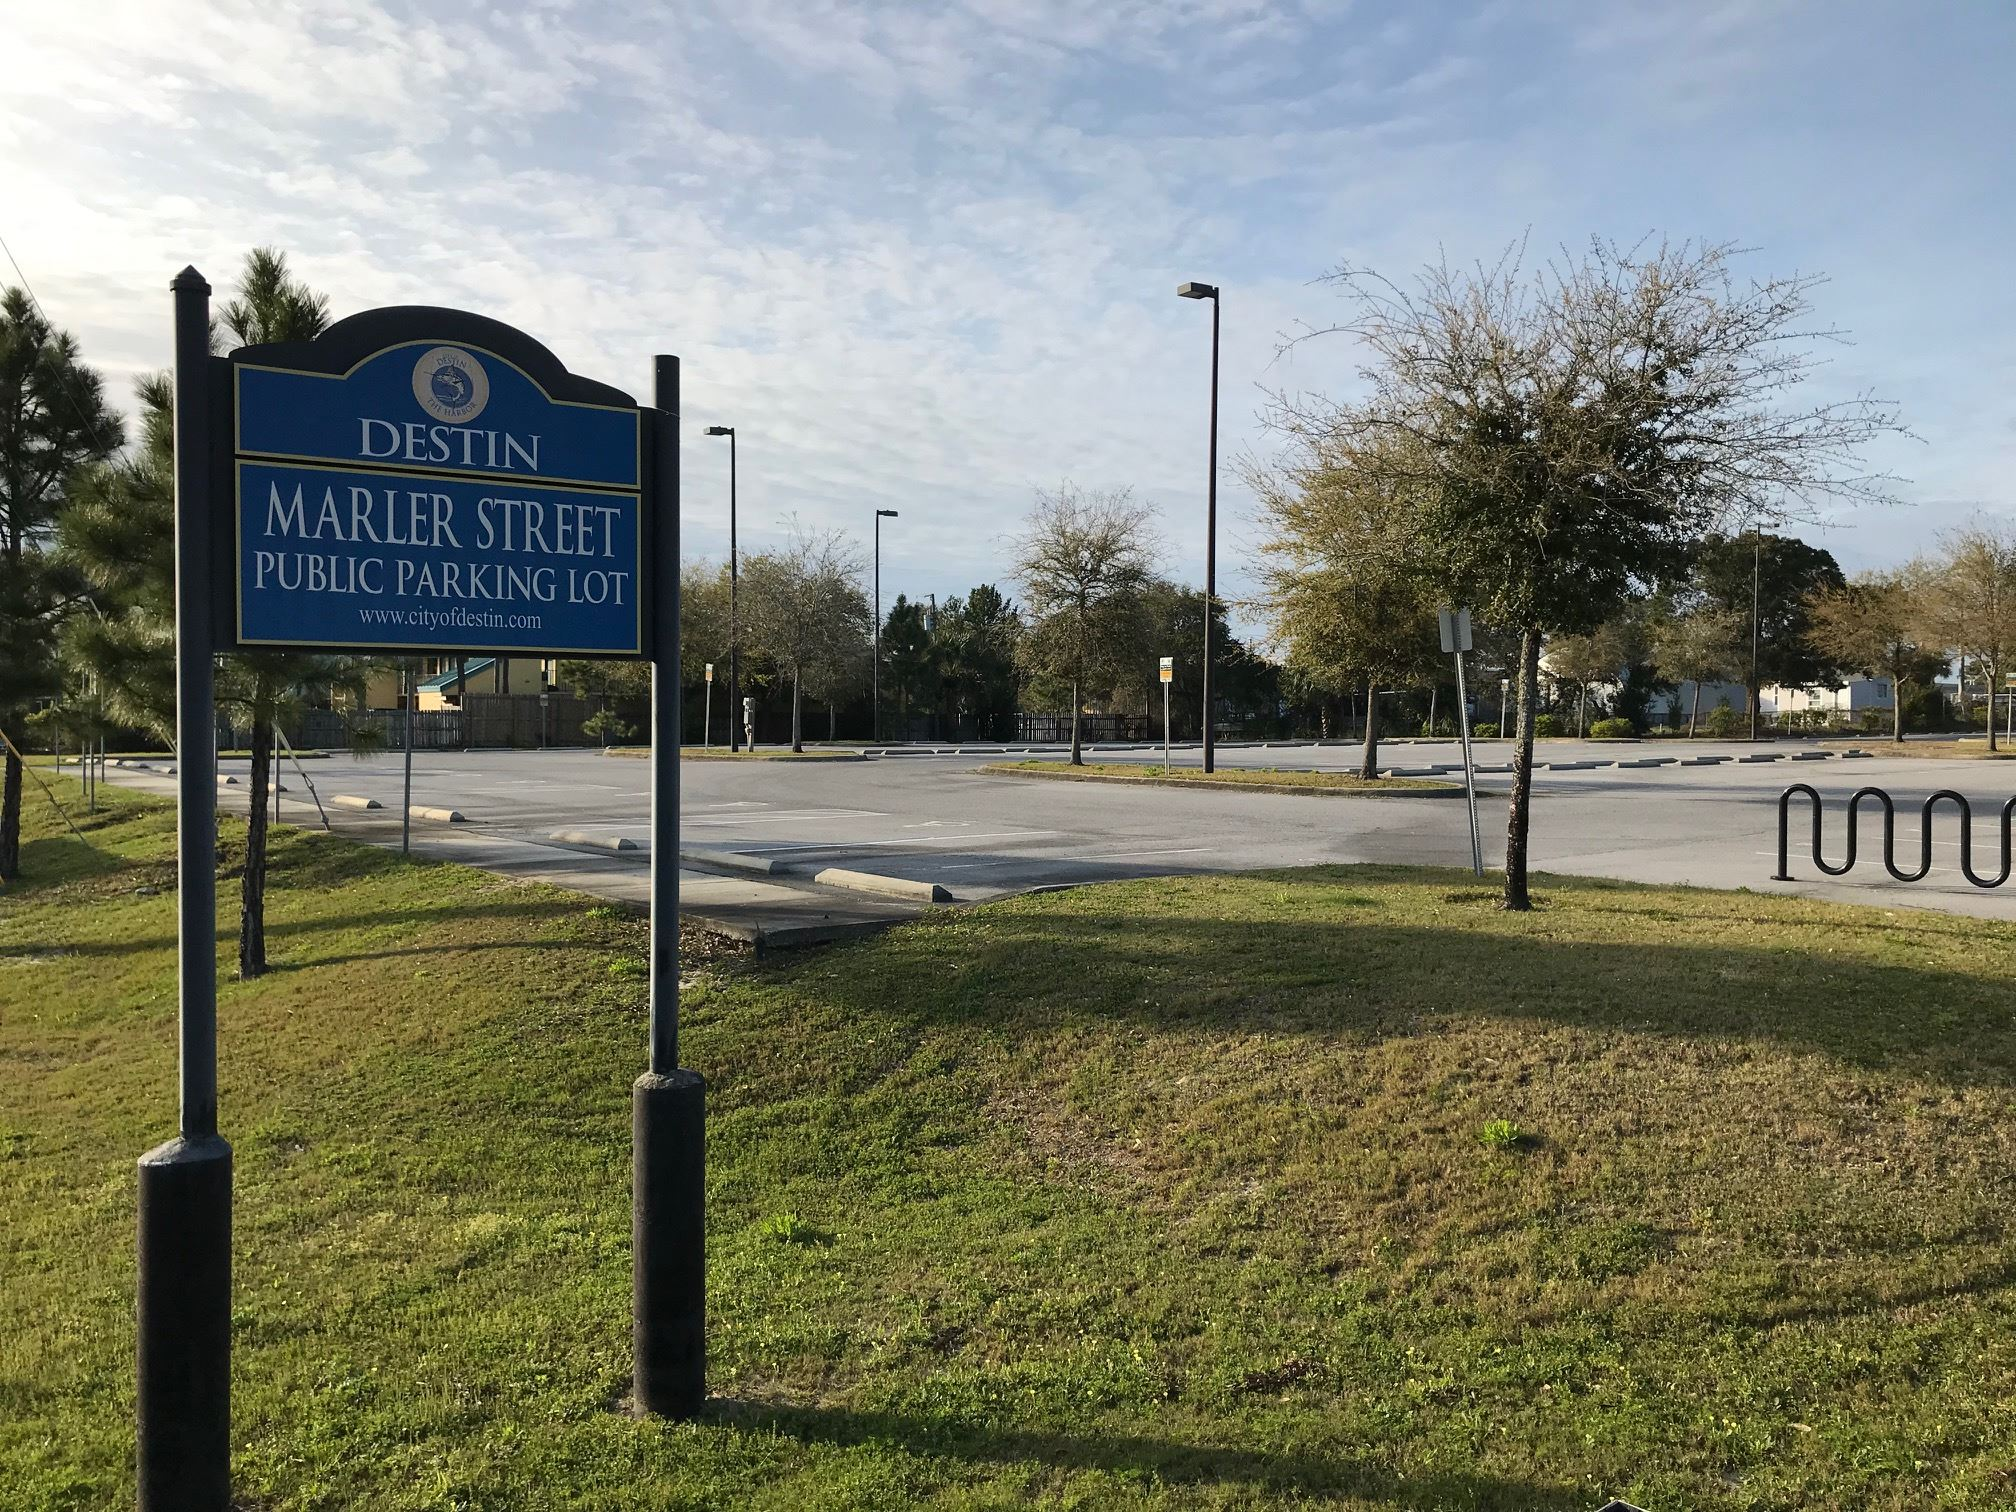 Marler Street Parking sign and parking lot